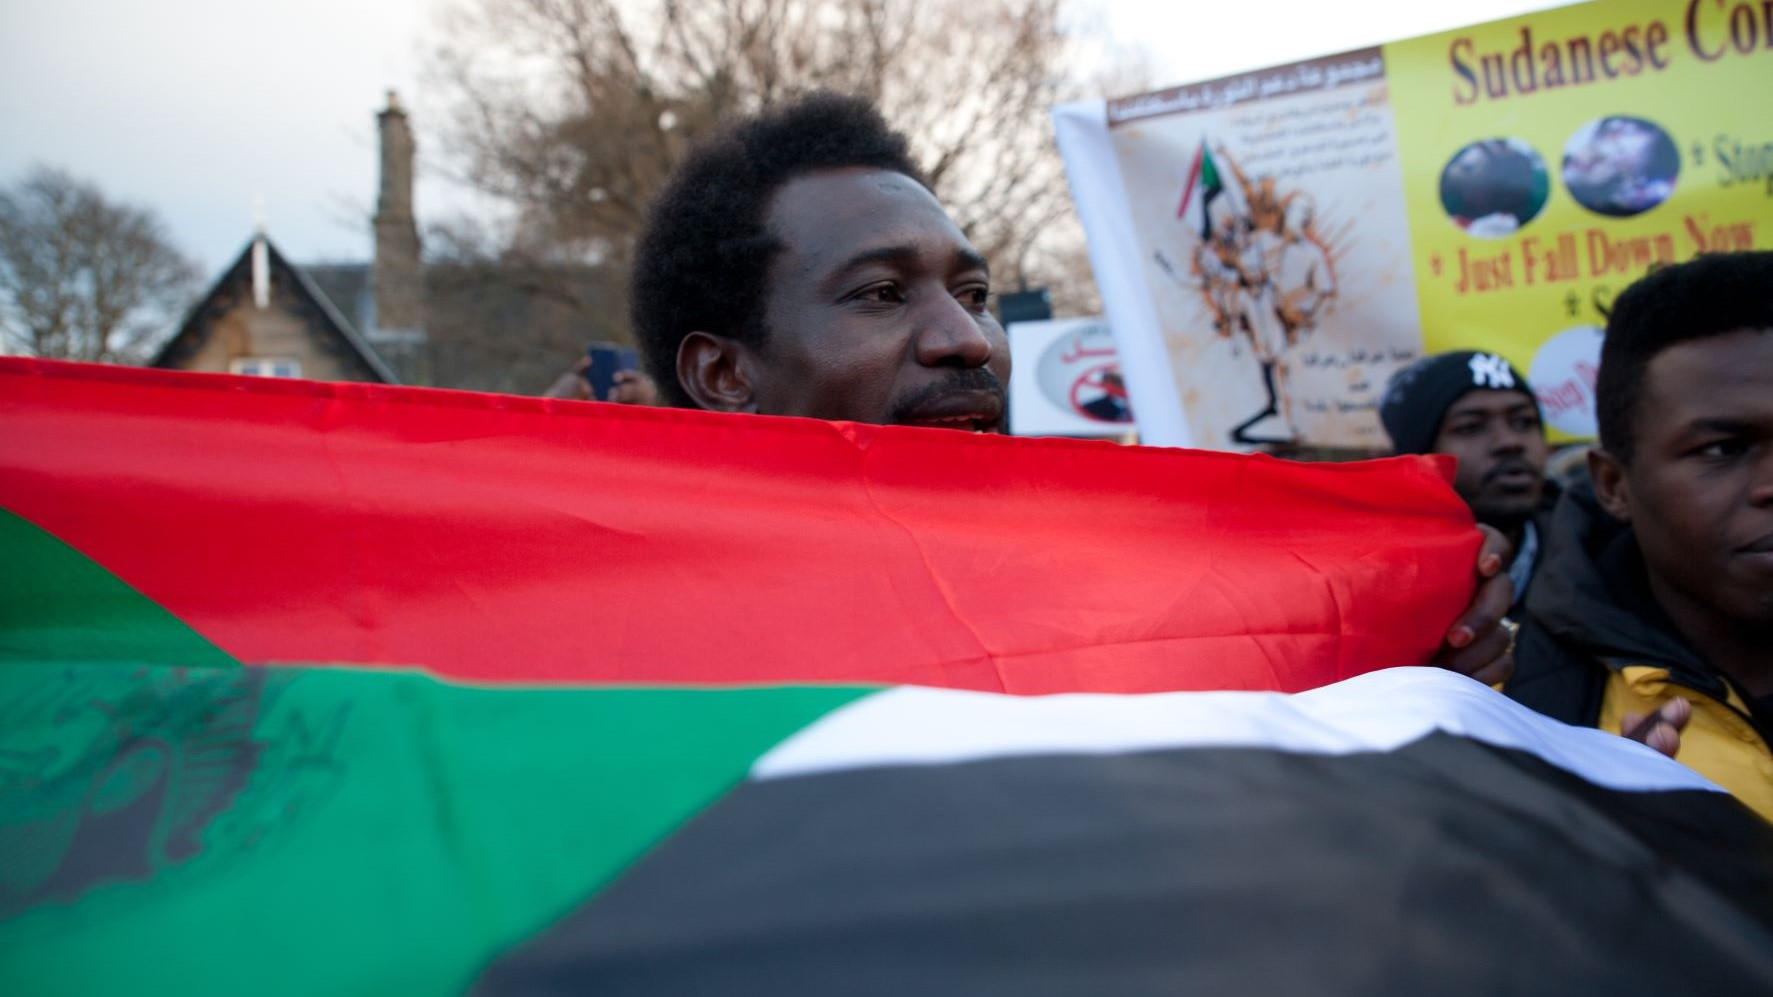 Sudan: Reports of a military coup – initial thoughts